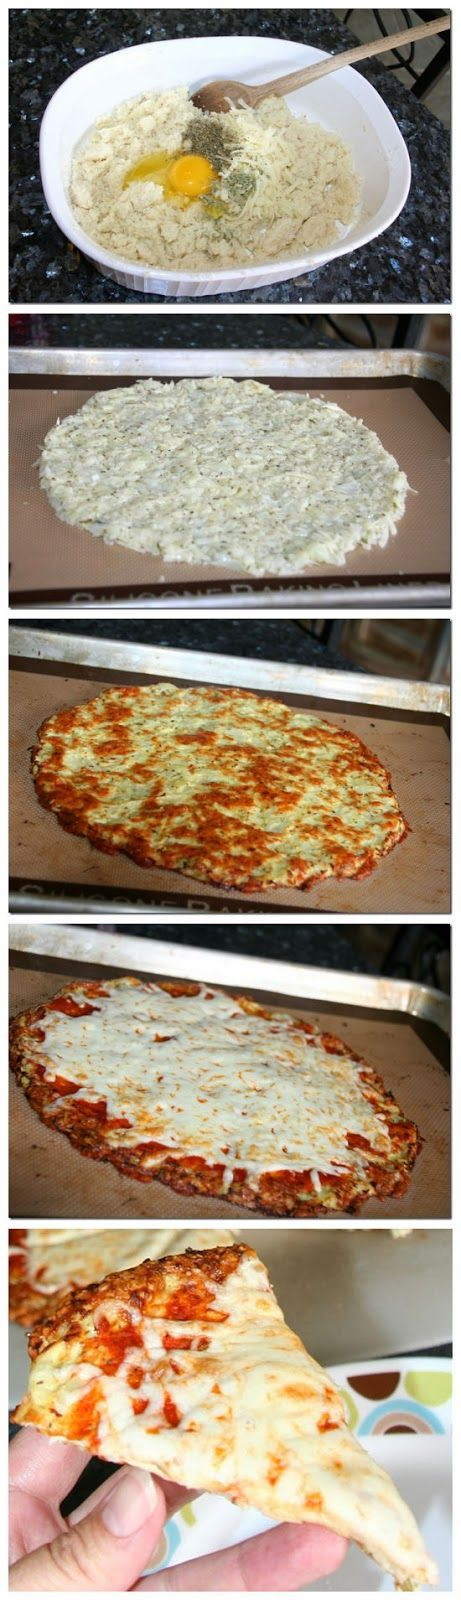 A grain-free alternative to traditional pizza crust, that you can pick up with your hands!     Ingredients   1 Cauli-Rice  1 egg  1/3 cup s...